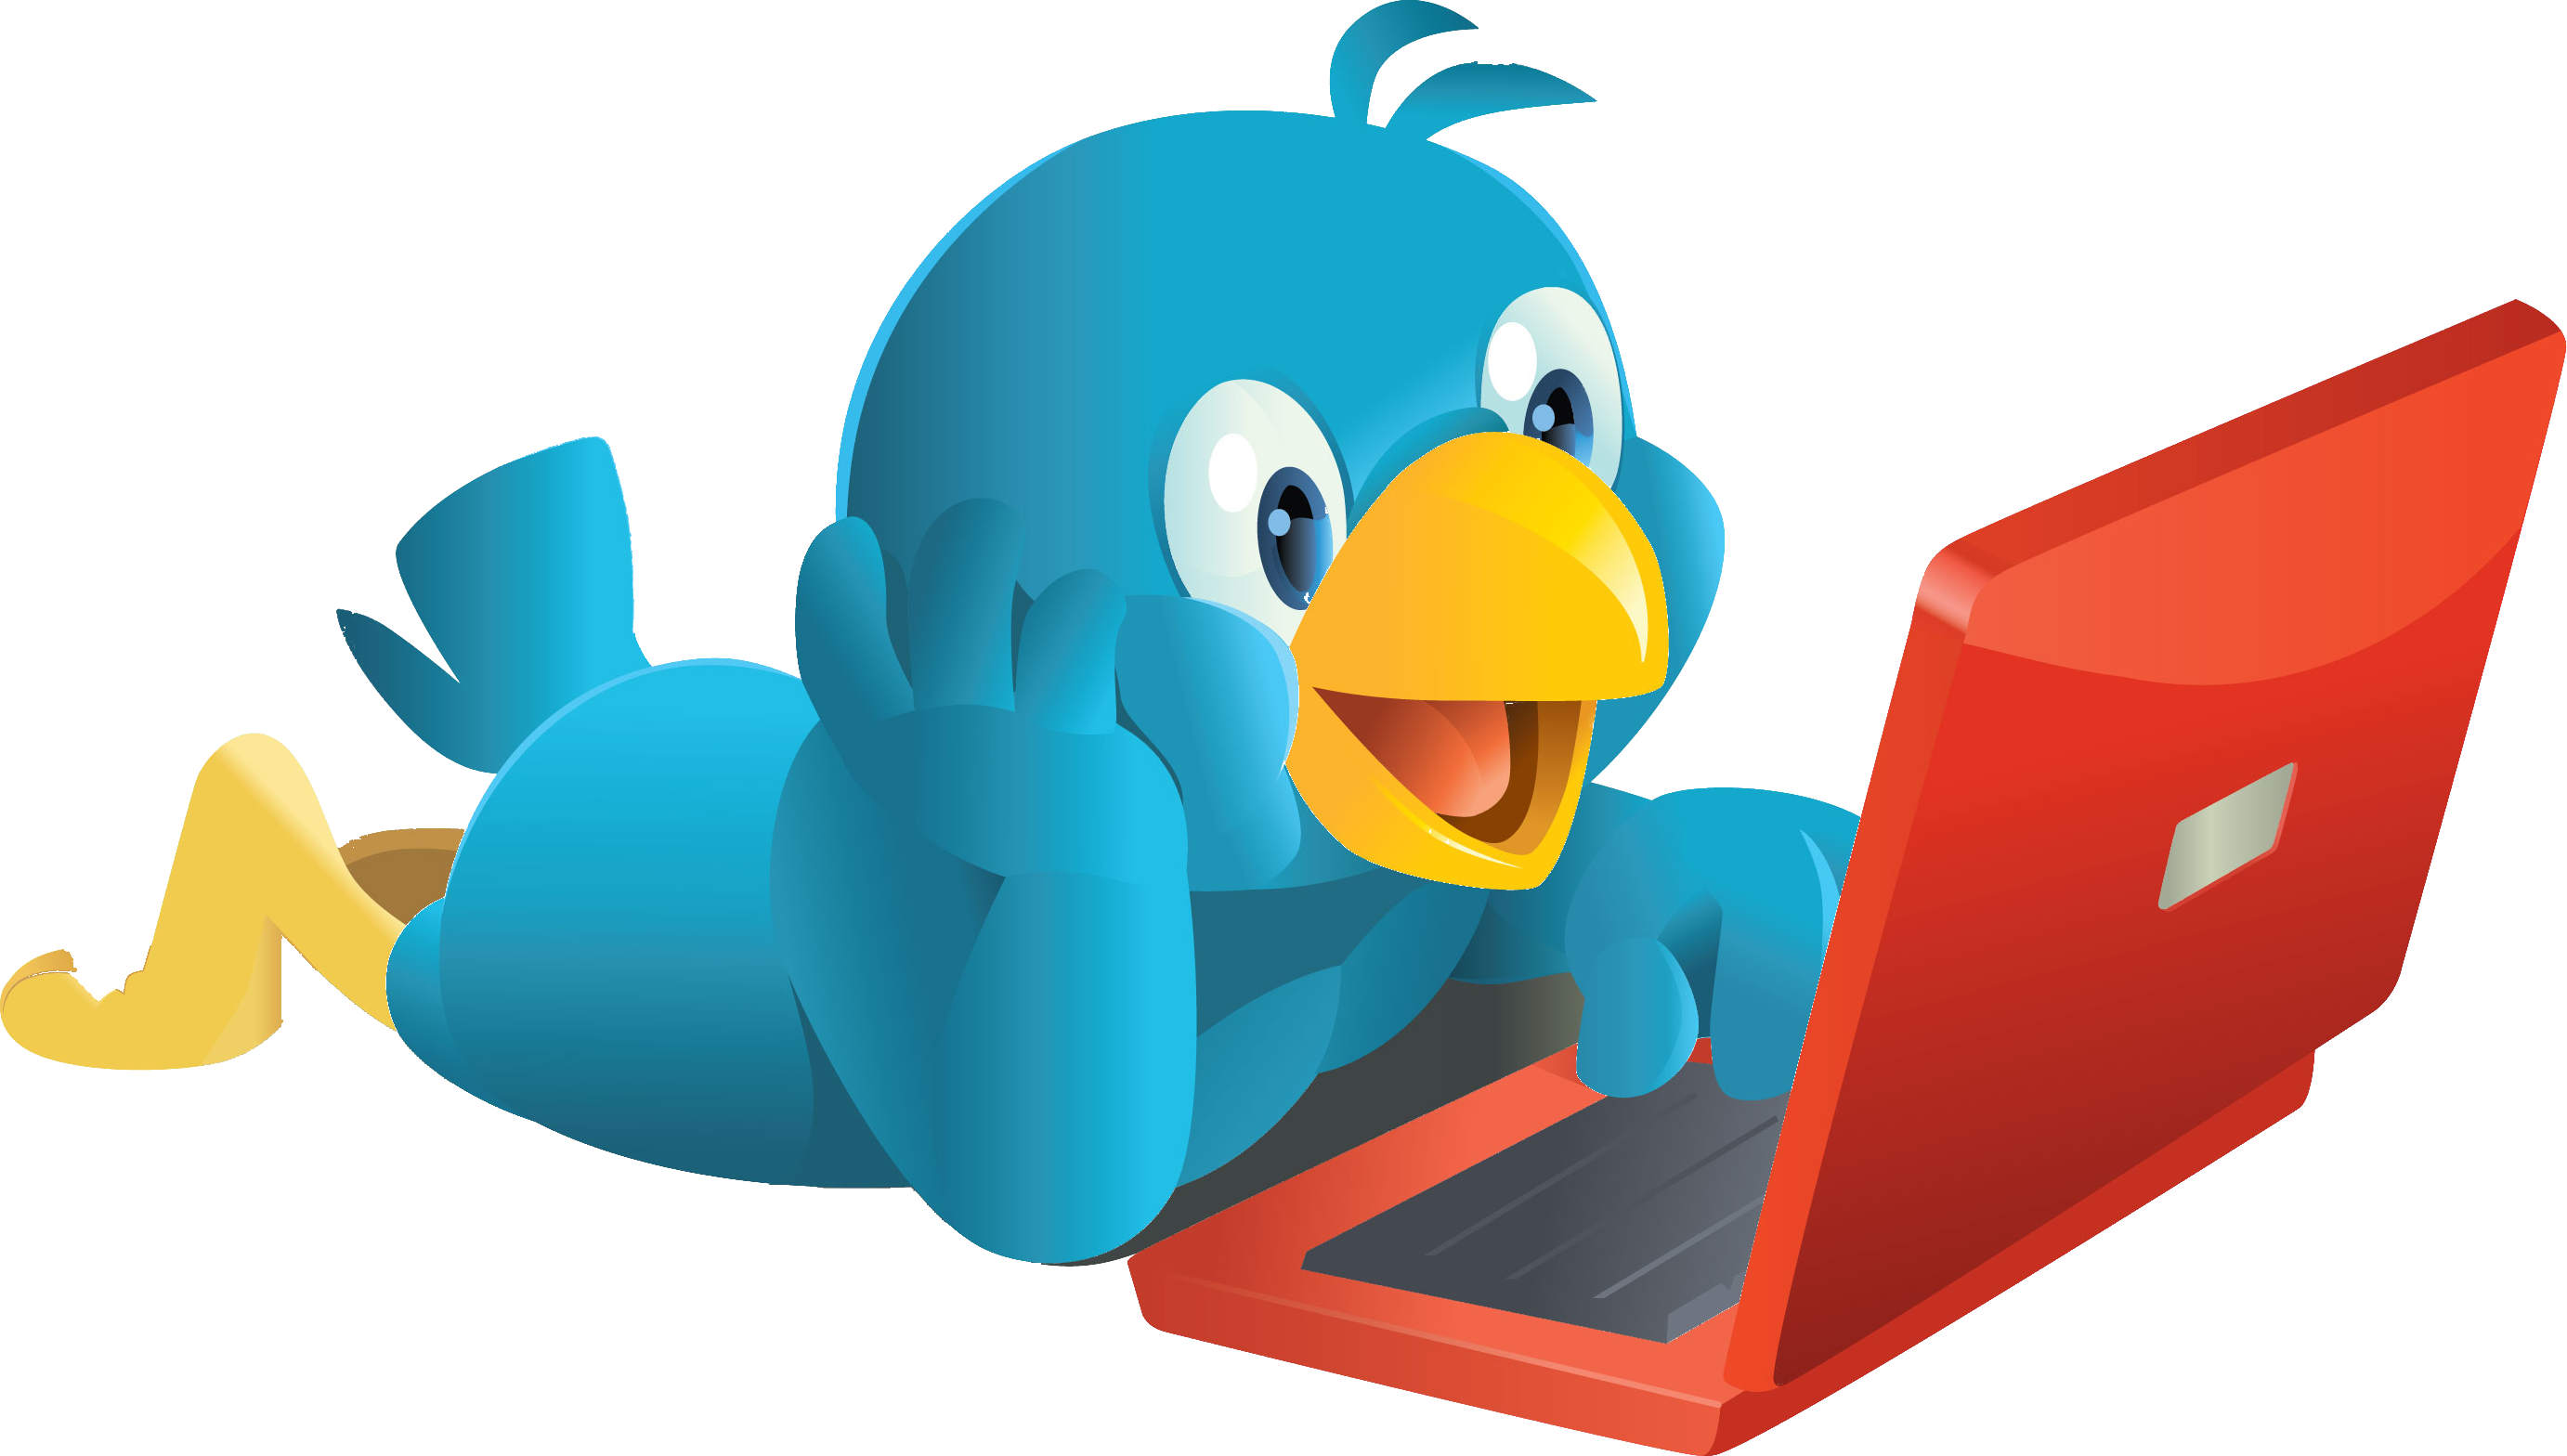 Networking Service Media Twitter User Social Bird PNG Image